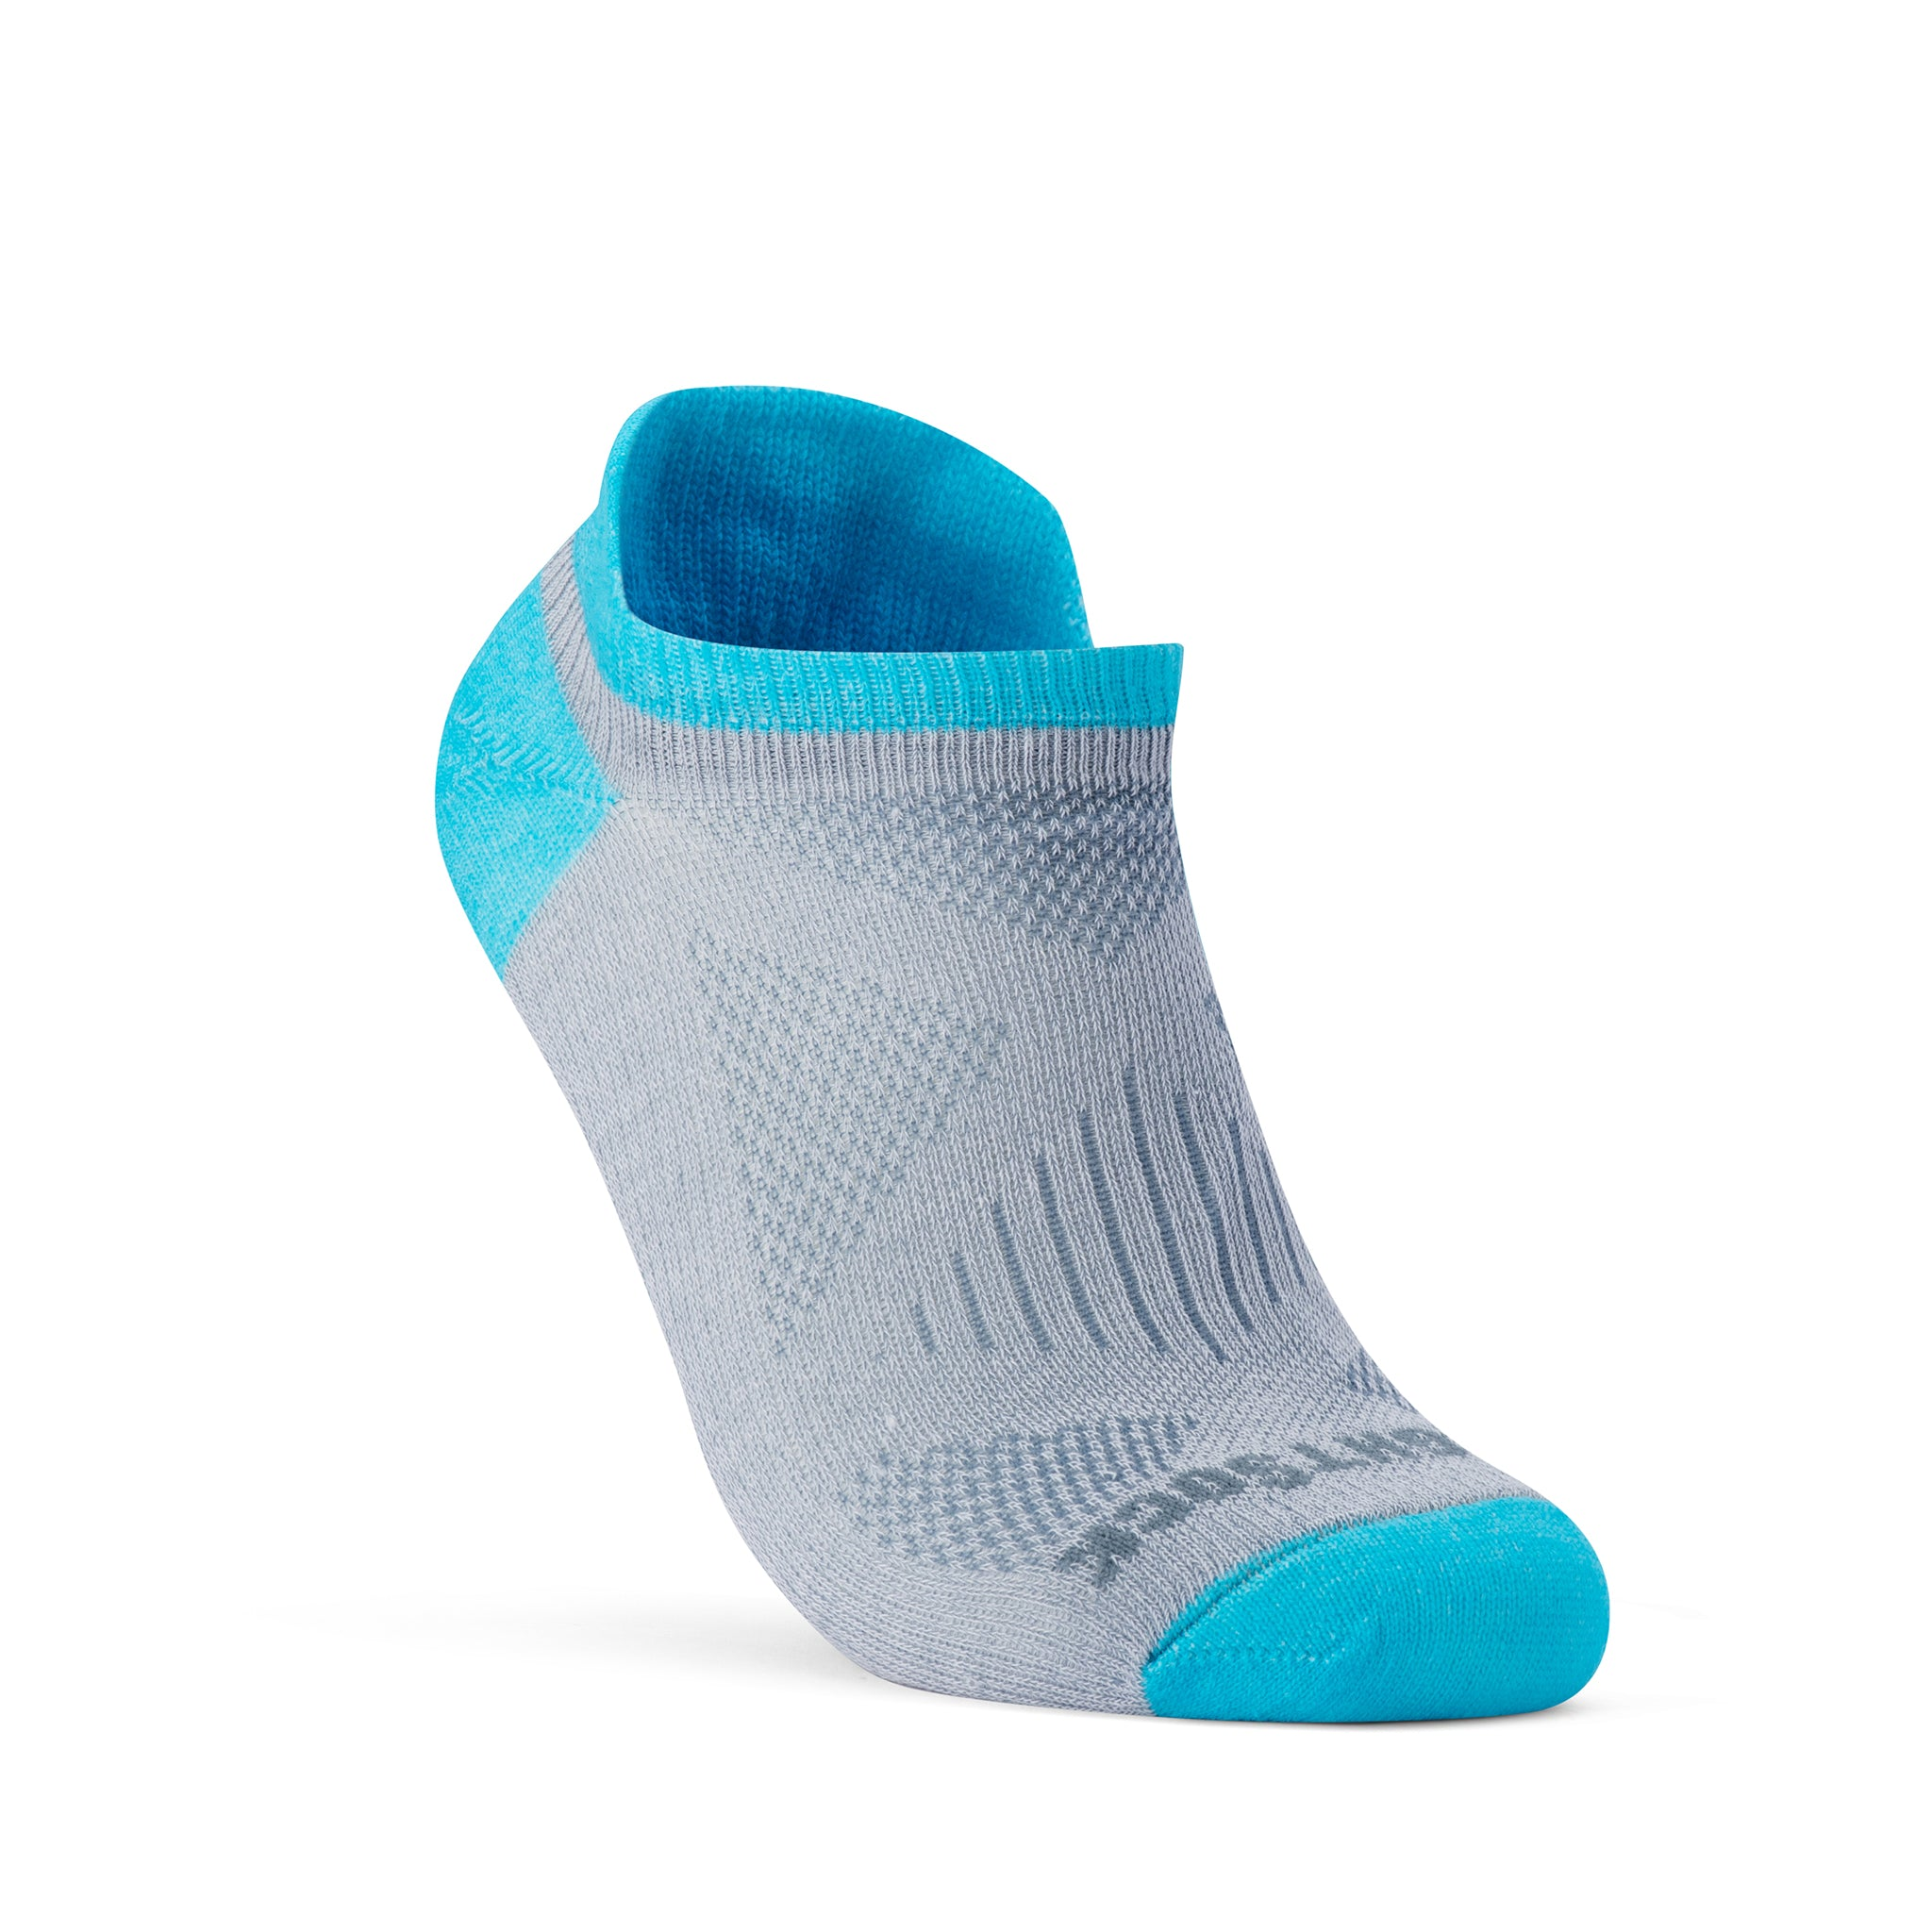 WOMEN'S COOLMESH II NARROW - TAB - GREY SCUBA-Wrightsock Australia